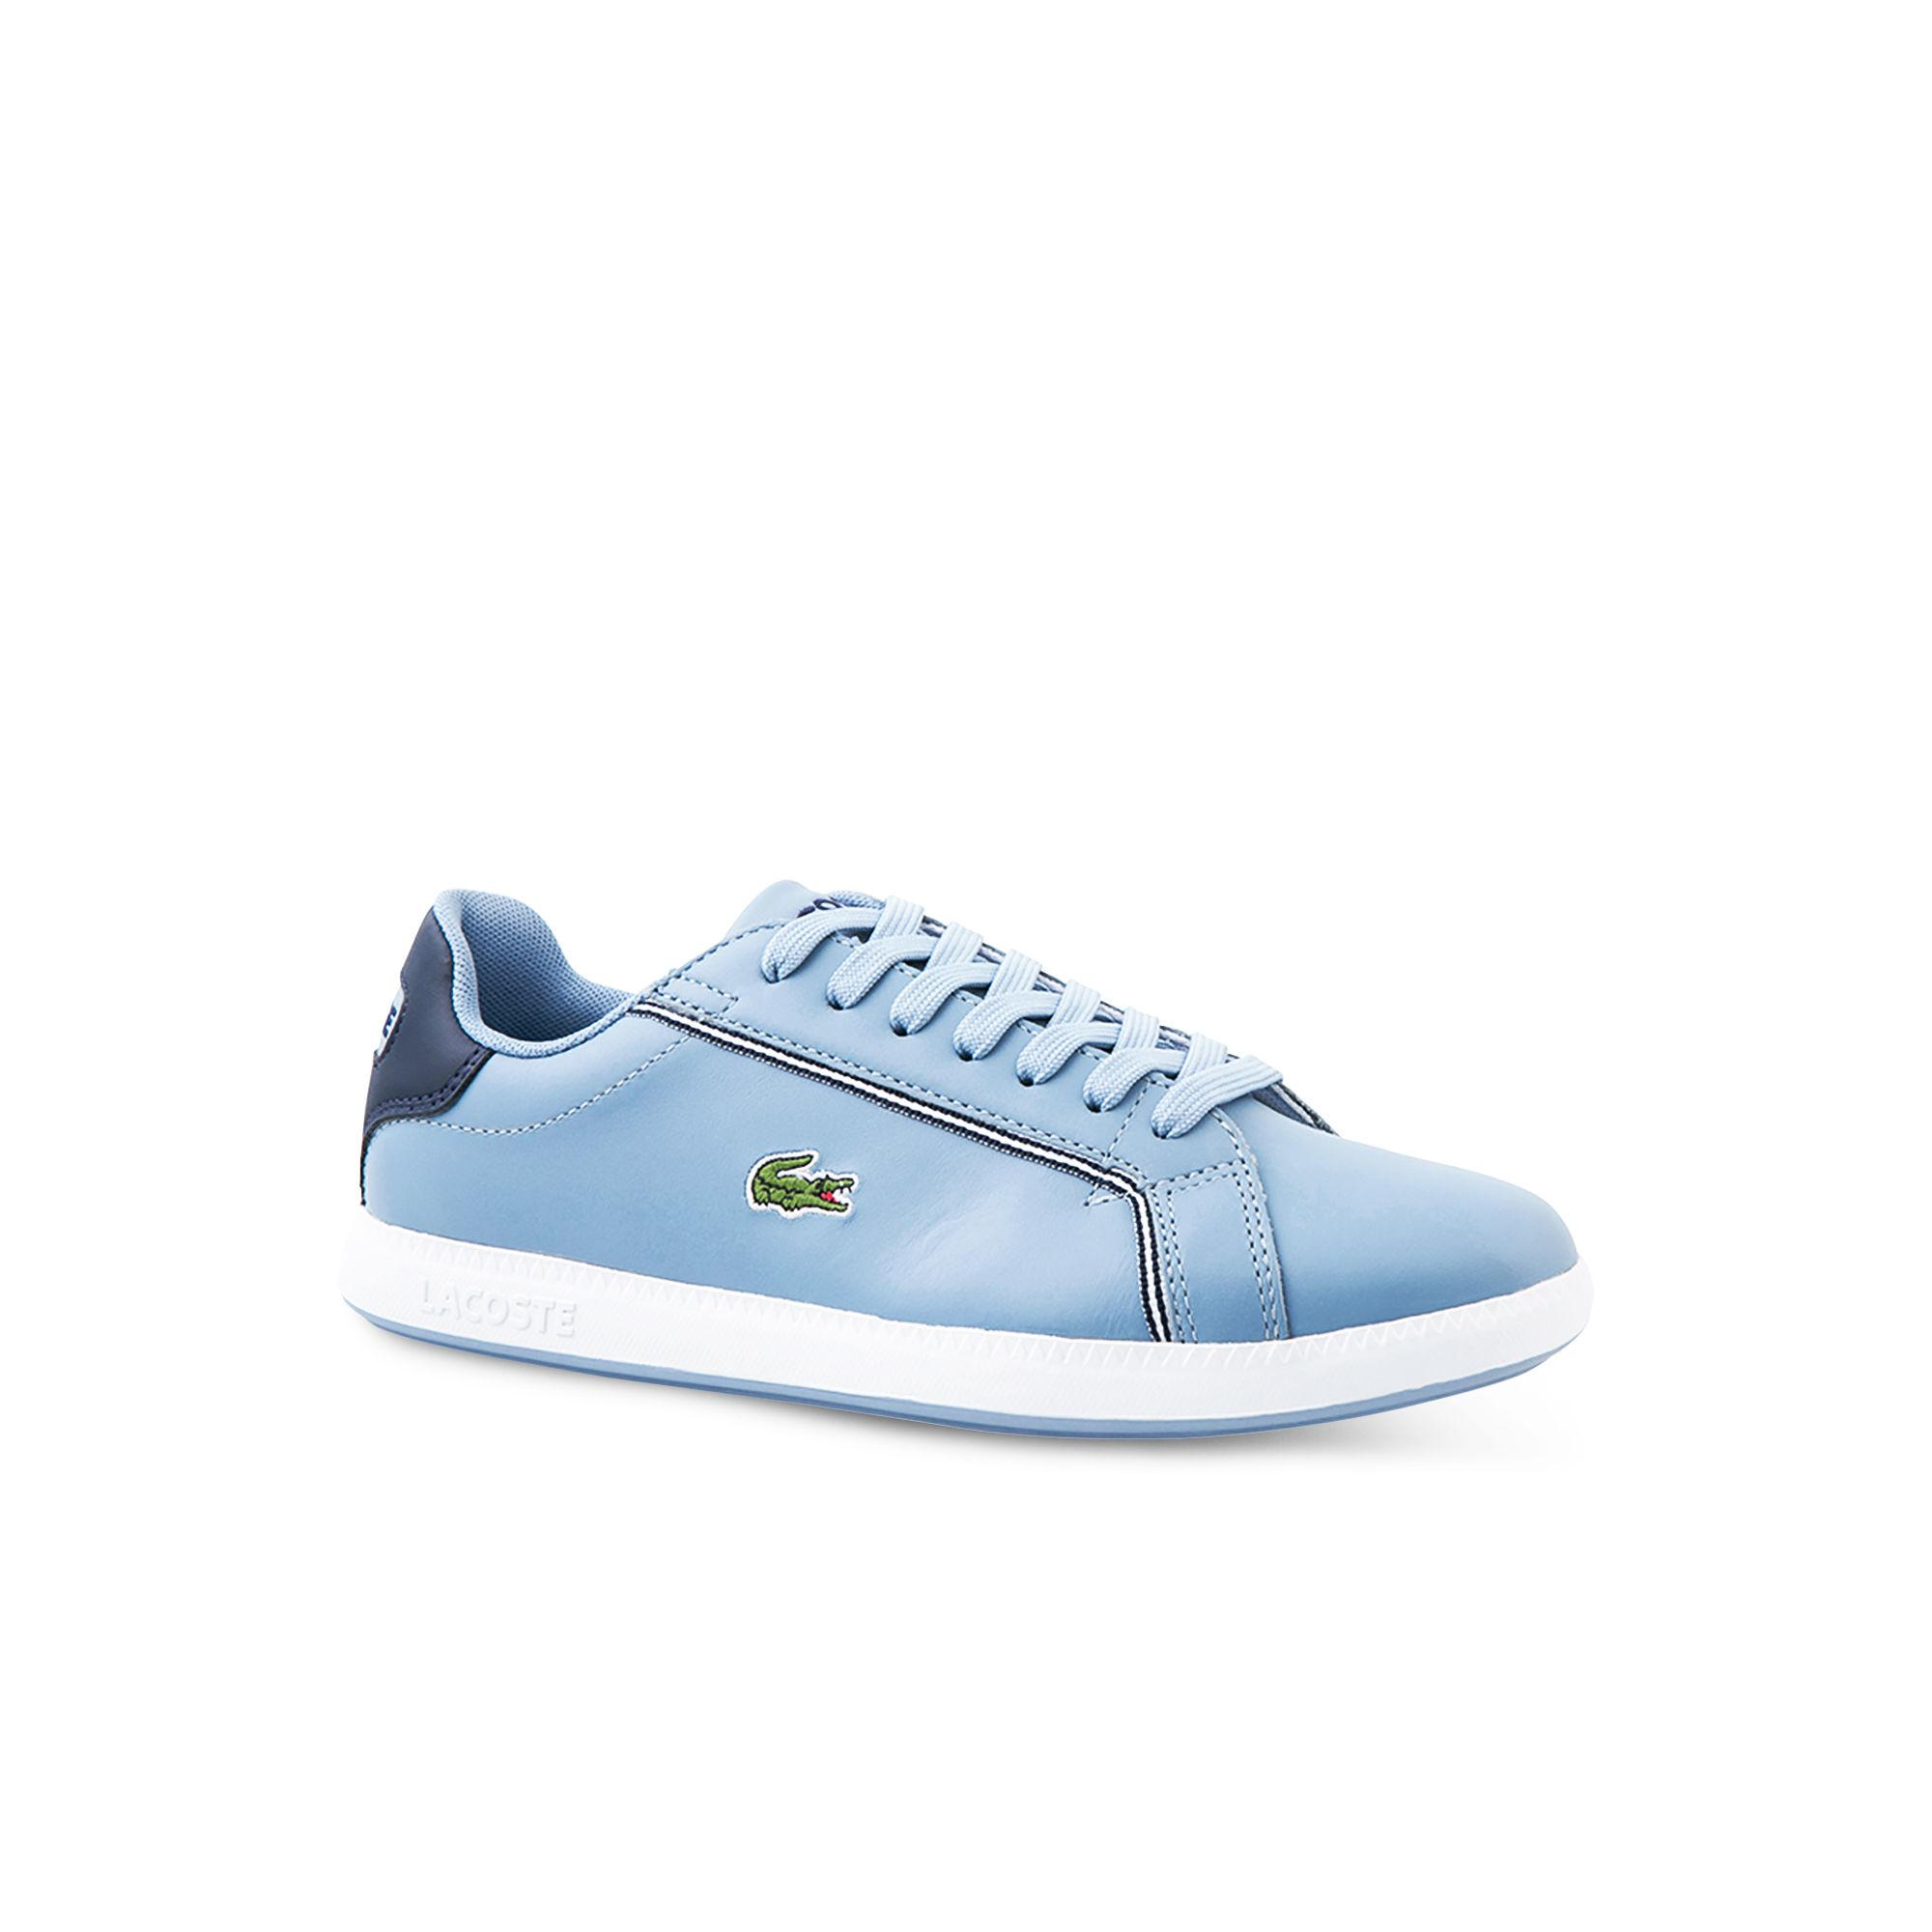 edb5521a2093 Lyst - Lacoste Graduate Bicolour Leather Trainers in Blue